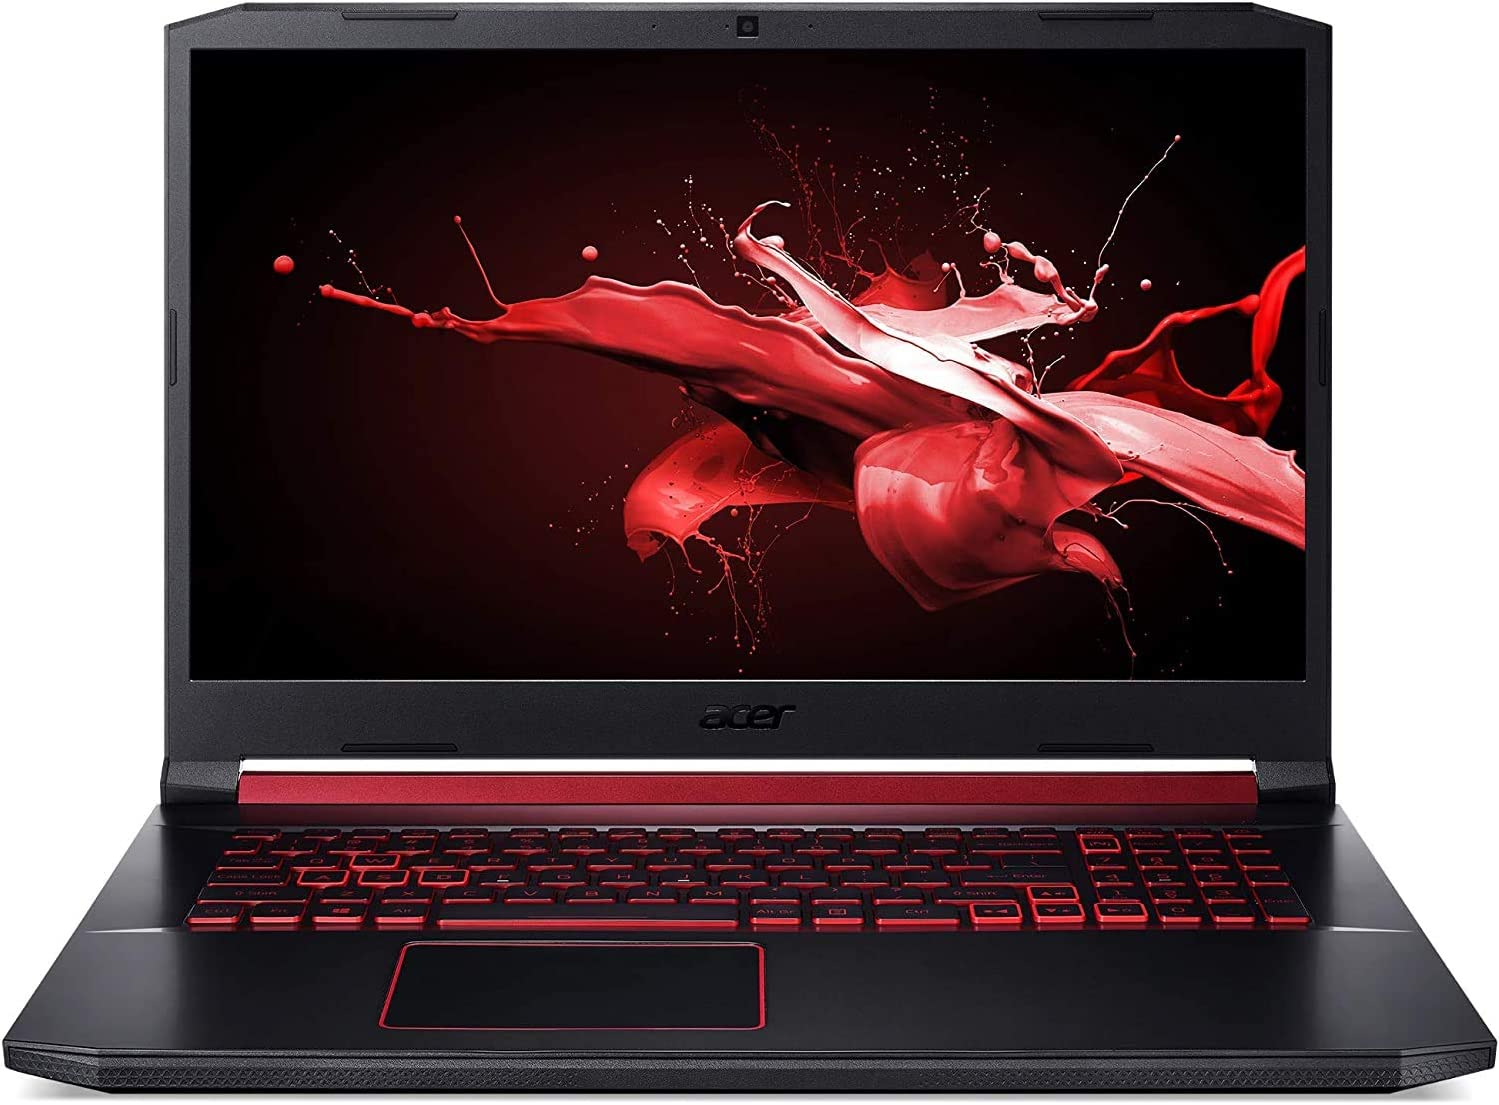 "Acer Nitro 5 - 17.3"" Laptop Intel Core i5-10300H 2.5GHz 8GB Ram 512GB SSD Win10H (Renewed)"